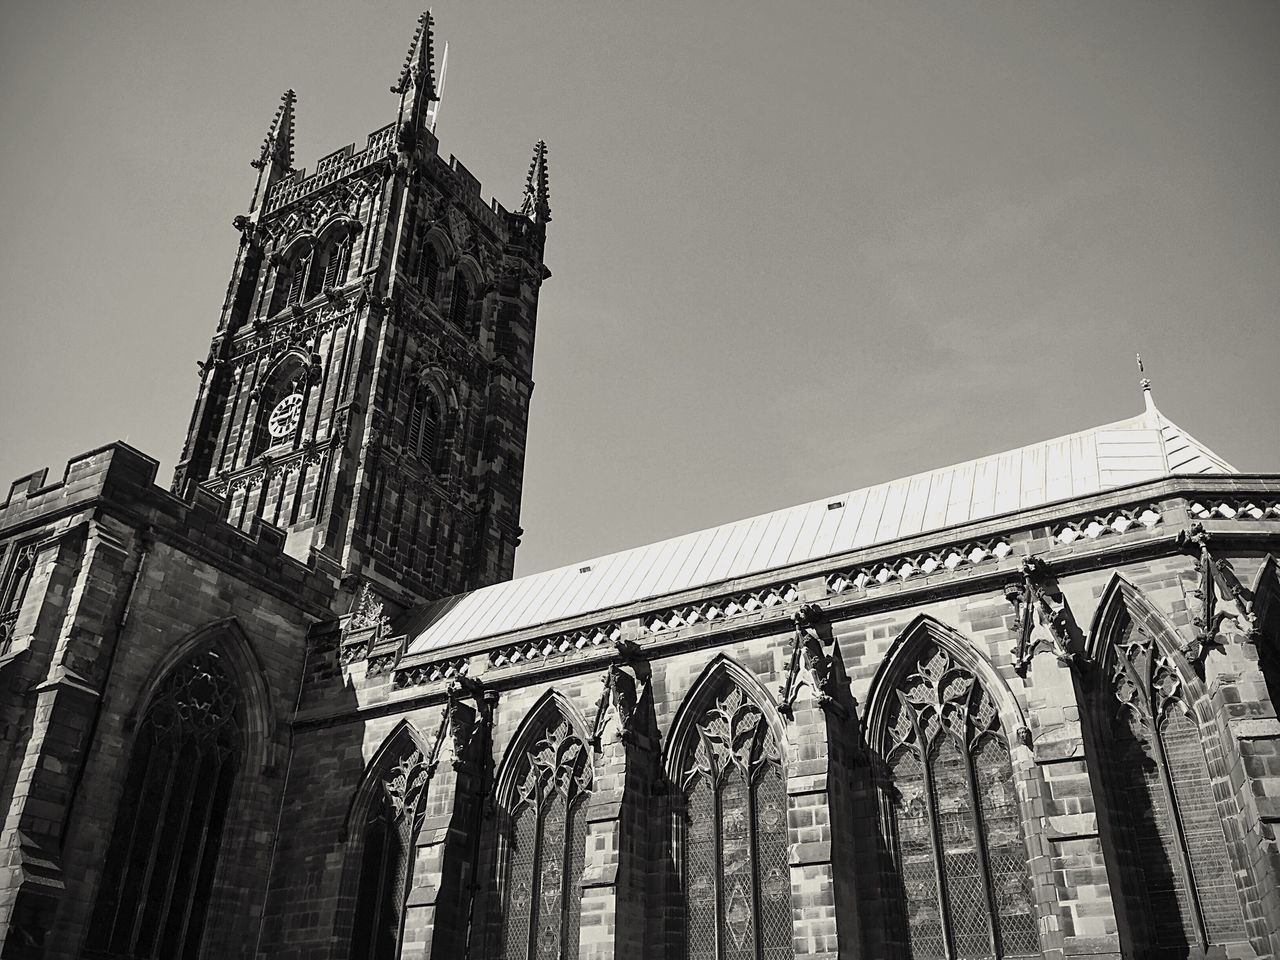 Wolverhampton Architecture Religion Church Place Of Worship Spirituality Low Angle View Cathedral Gothic Architecture Gothic Cathedral West Midlands St Peters Cathedral St Peters St Peter's Saint Peter's Cathedral Gothic Cathedral Place Of Worship Spirituality Architecture Low Angle View City